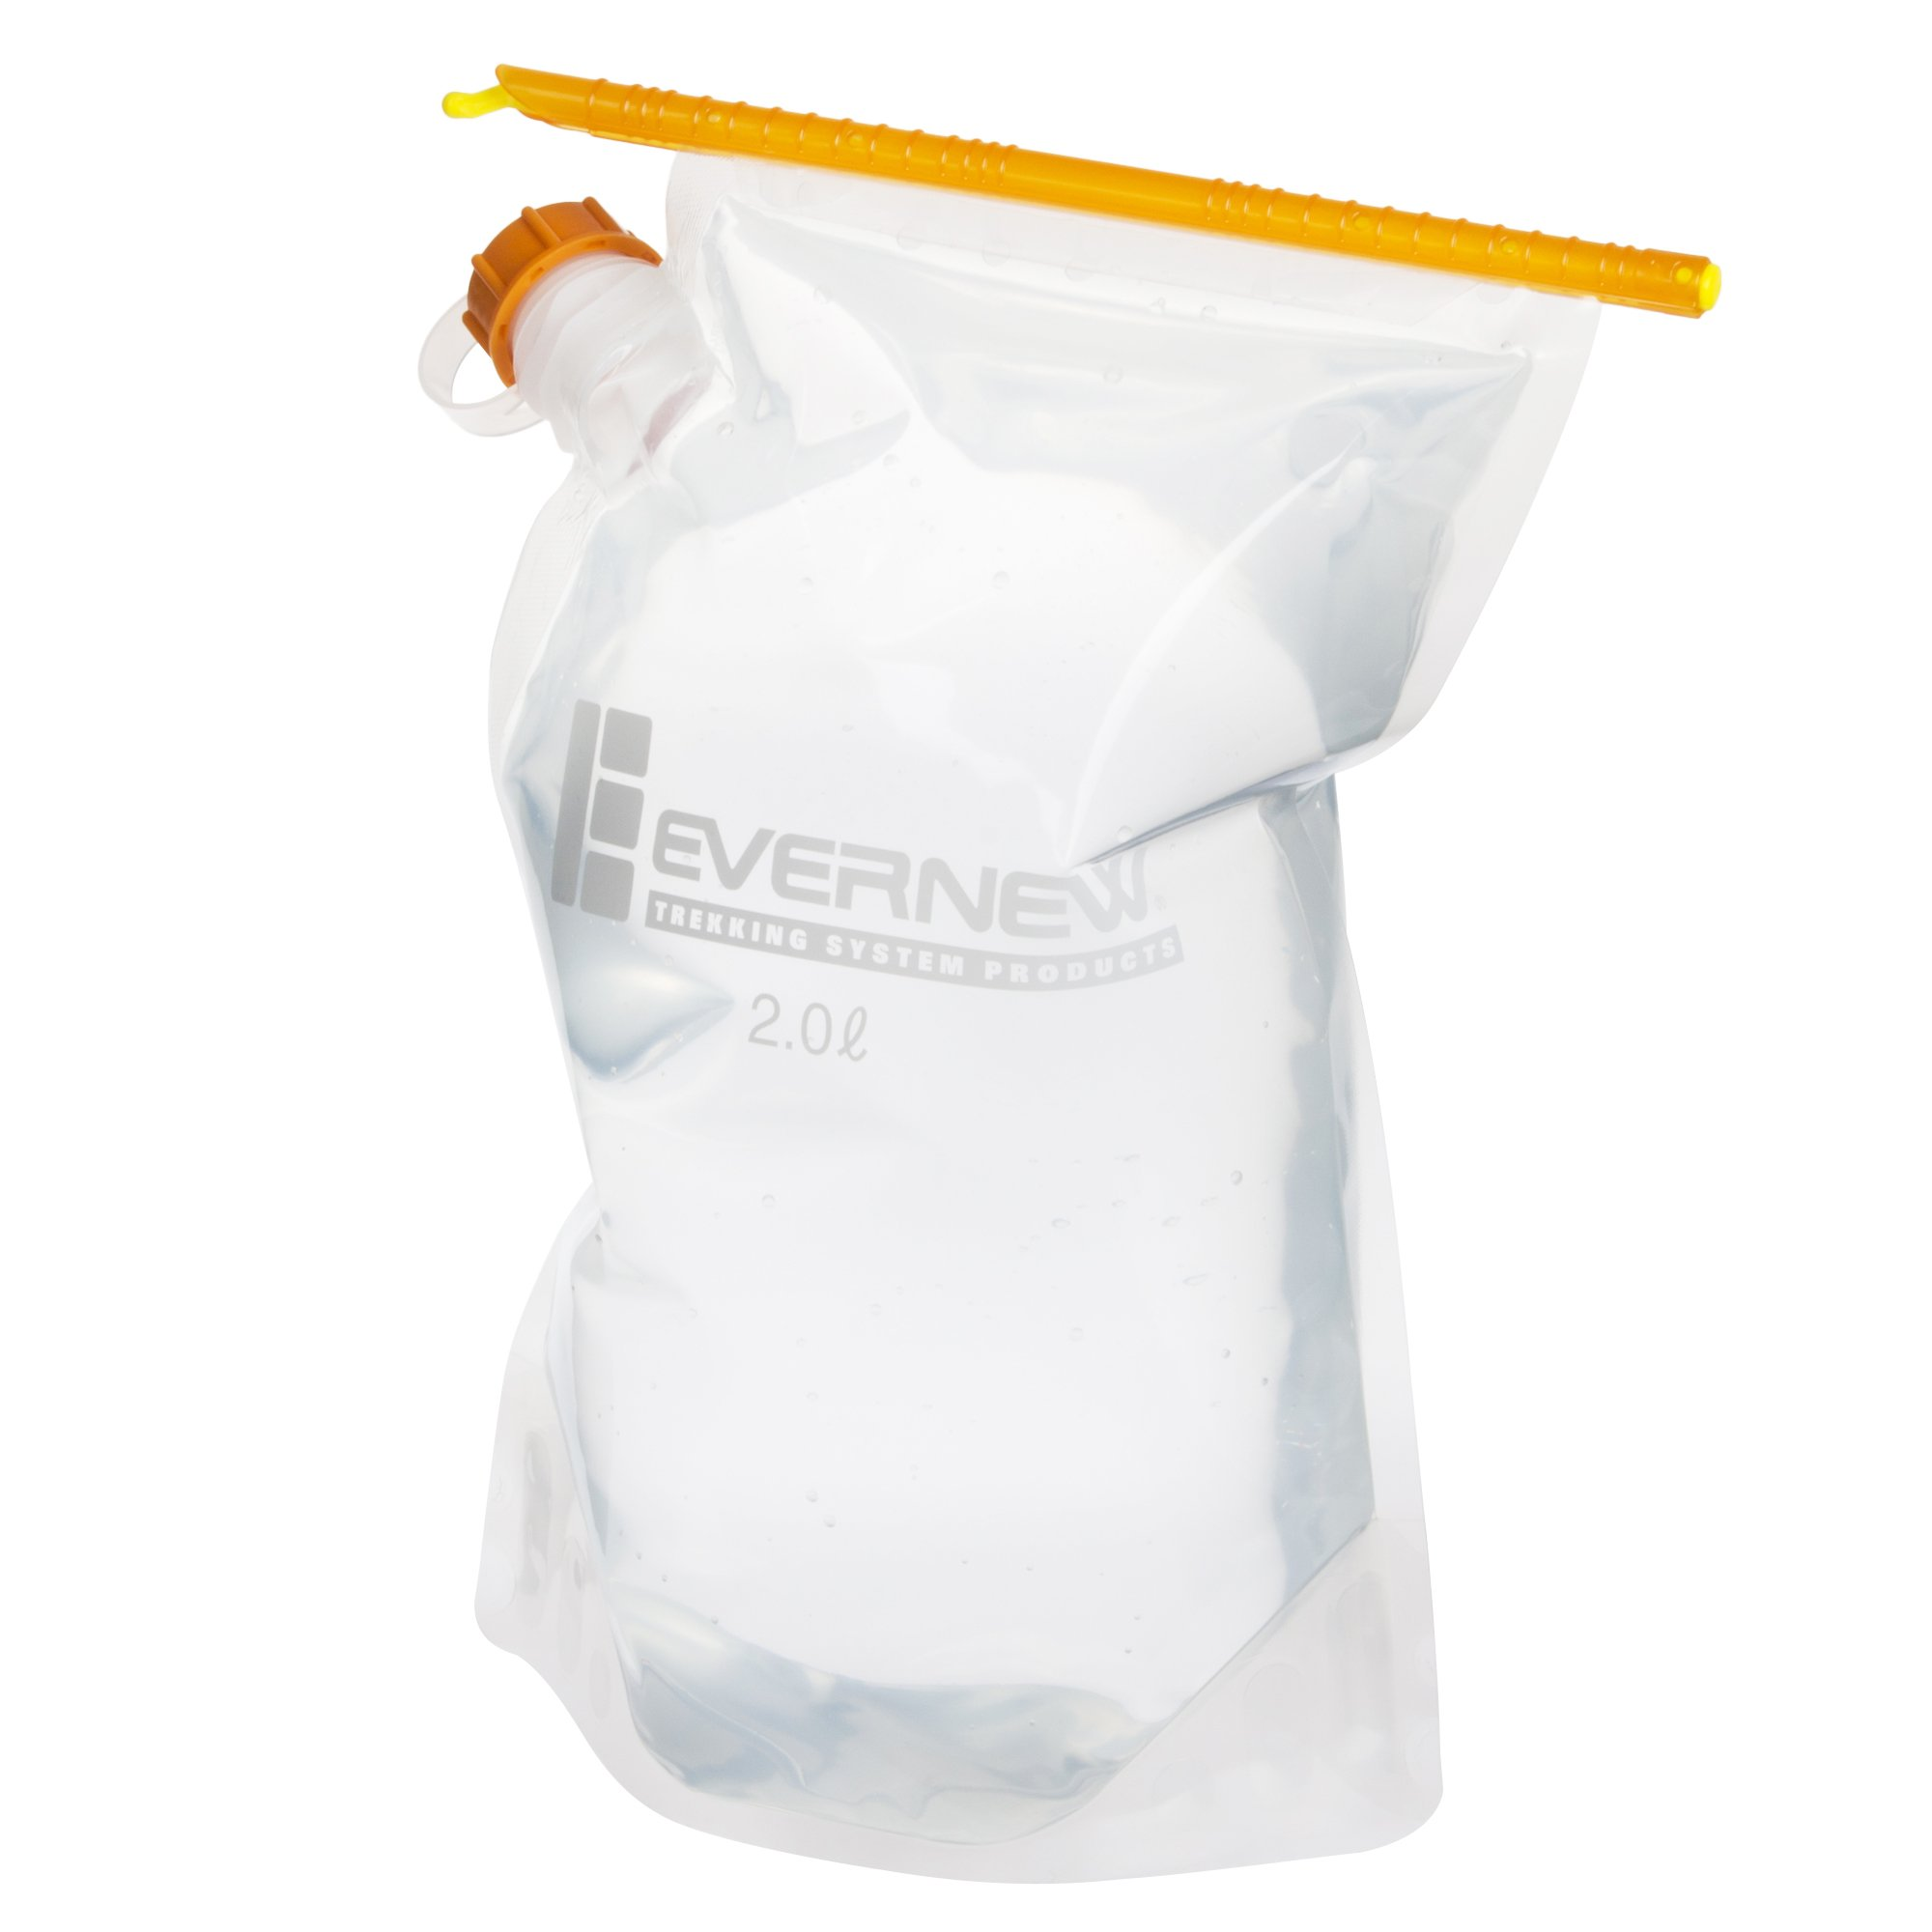 Ebanyu (EVERNEW) water bag 2L EBY209 (japan import)